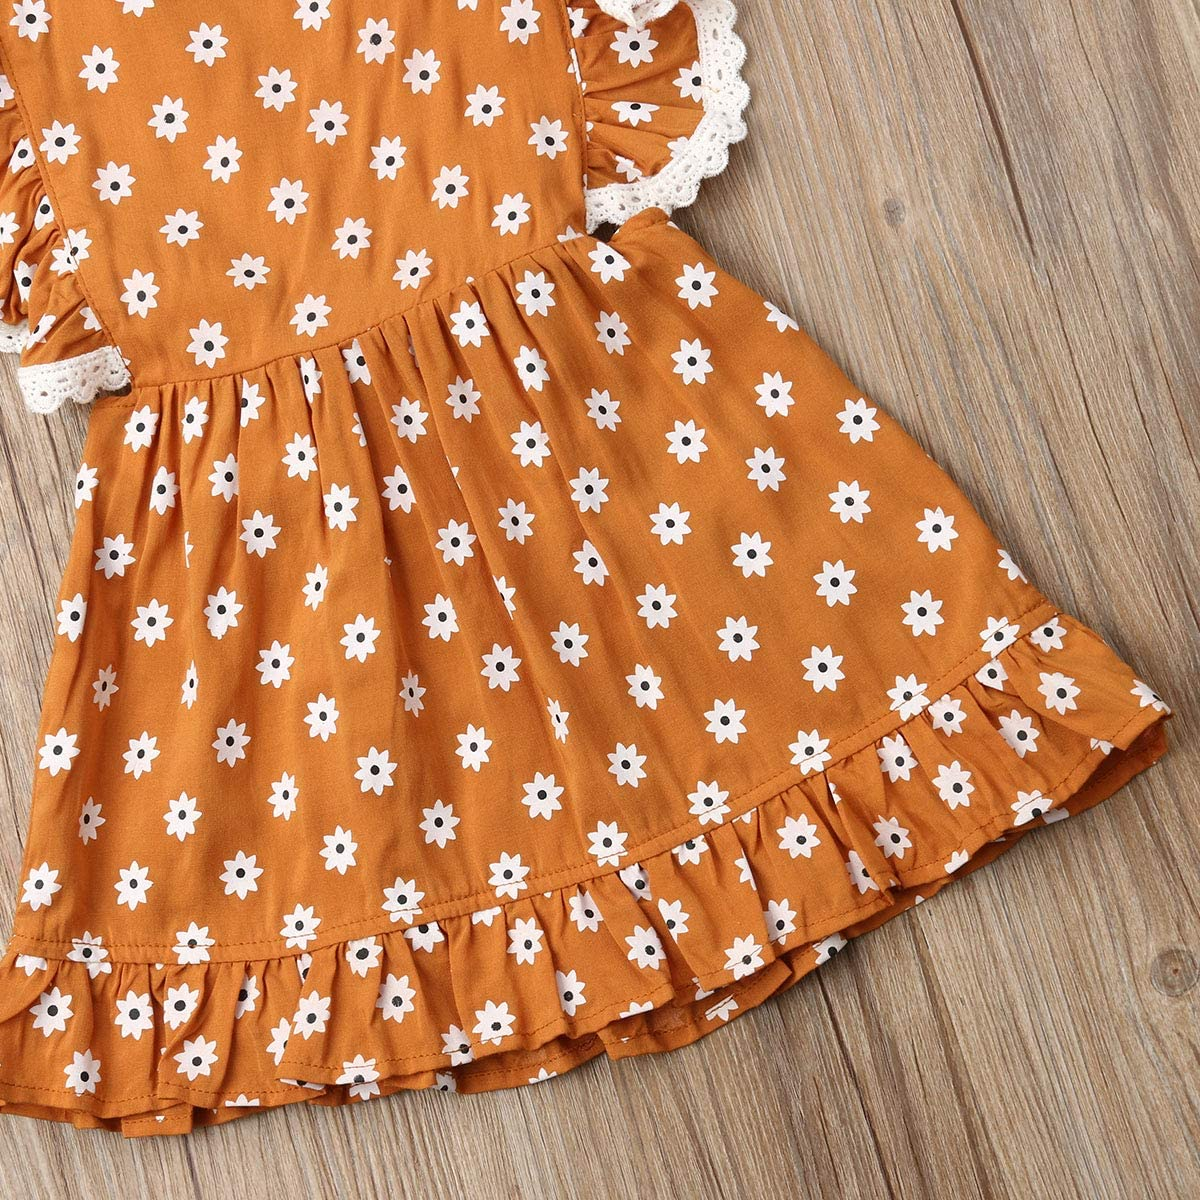 Newborn Kids Infant Baby Girls Summer Ruffle Backless Lace Floral Lovely A-Line Strap Dress Sundress Clothes Outfits